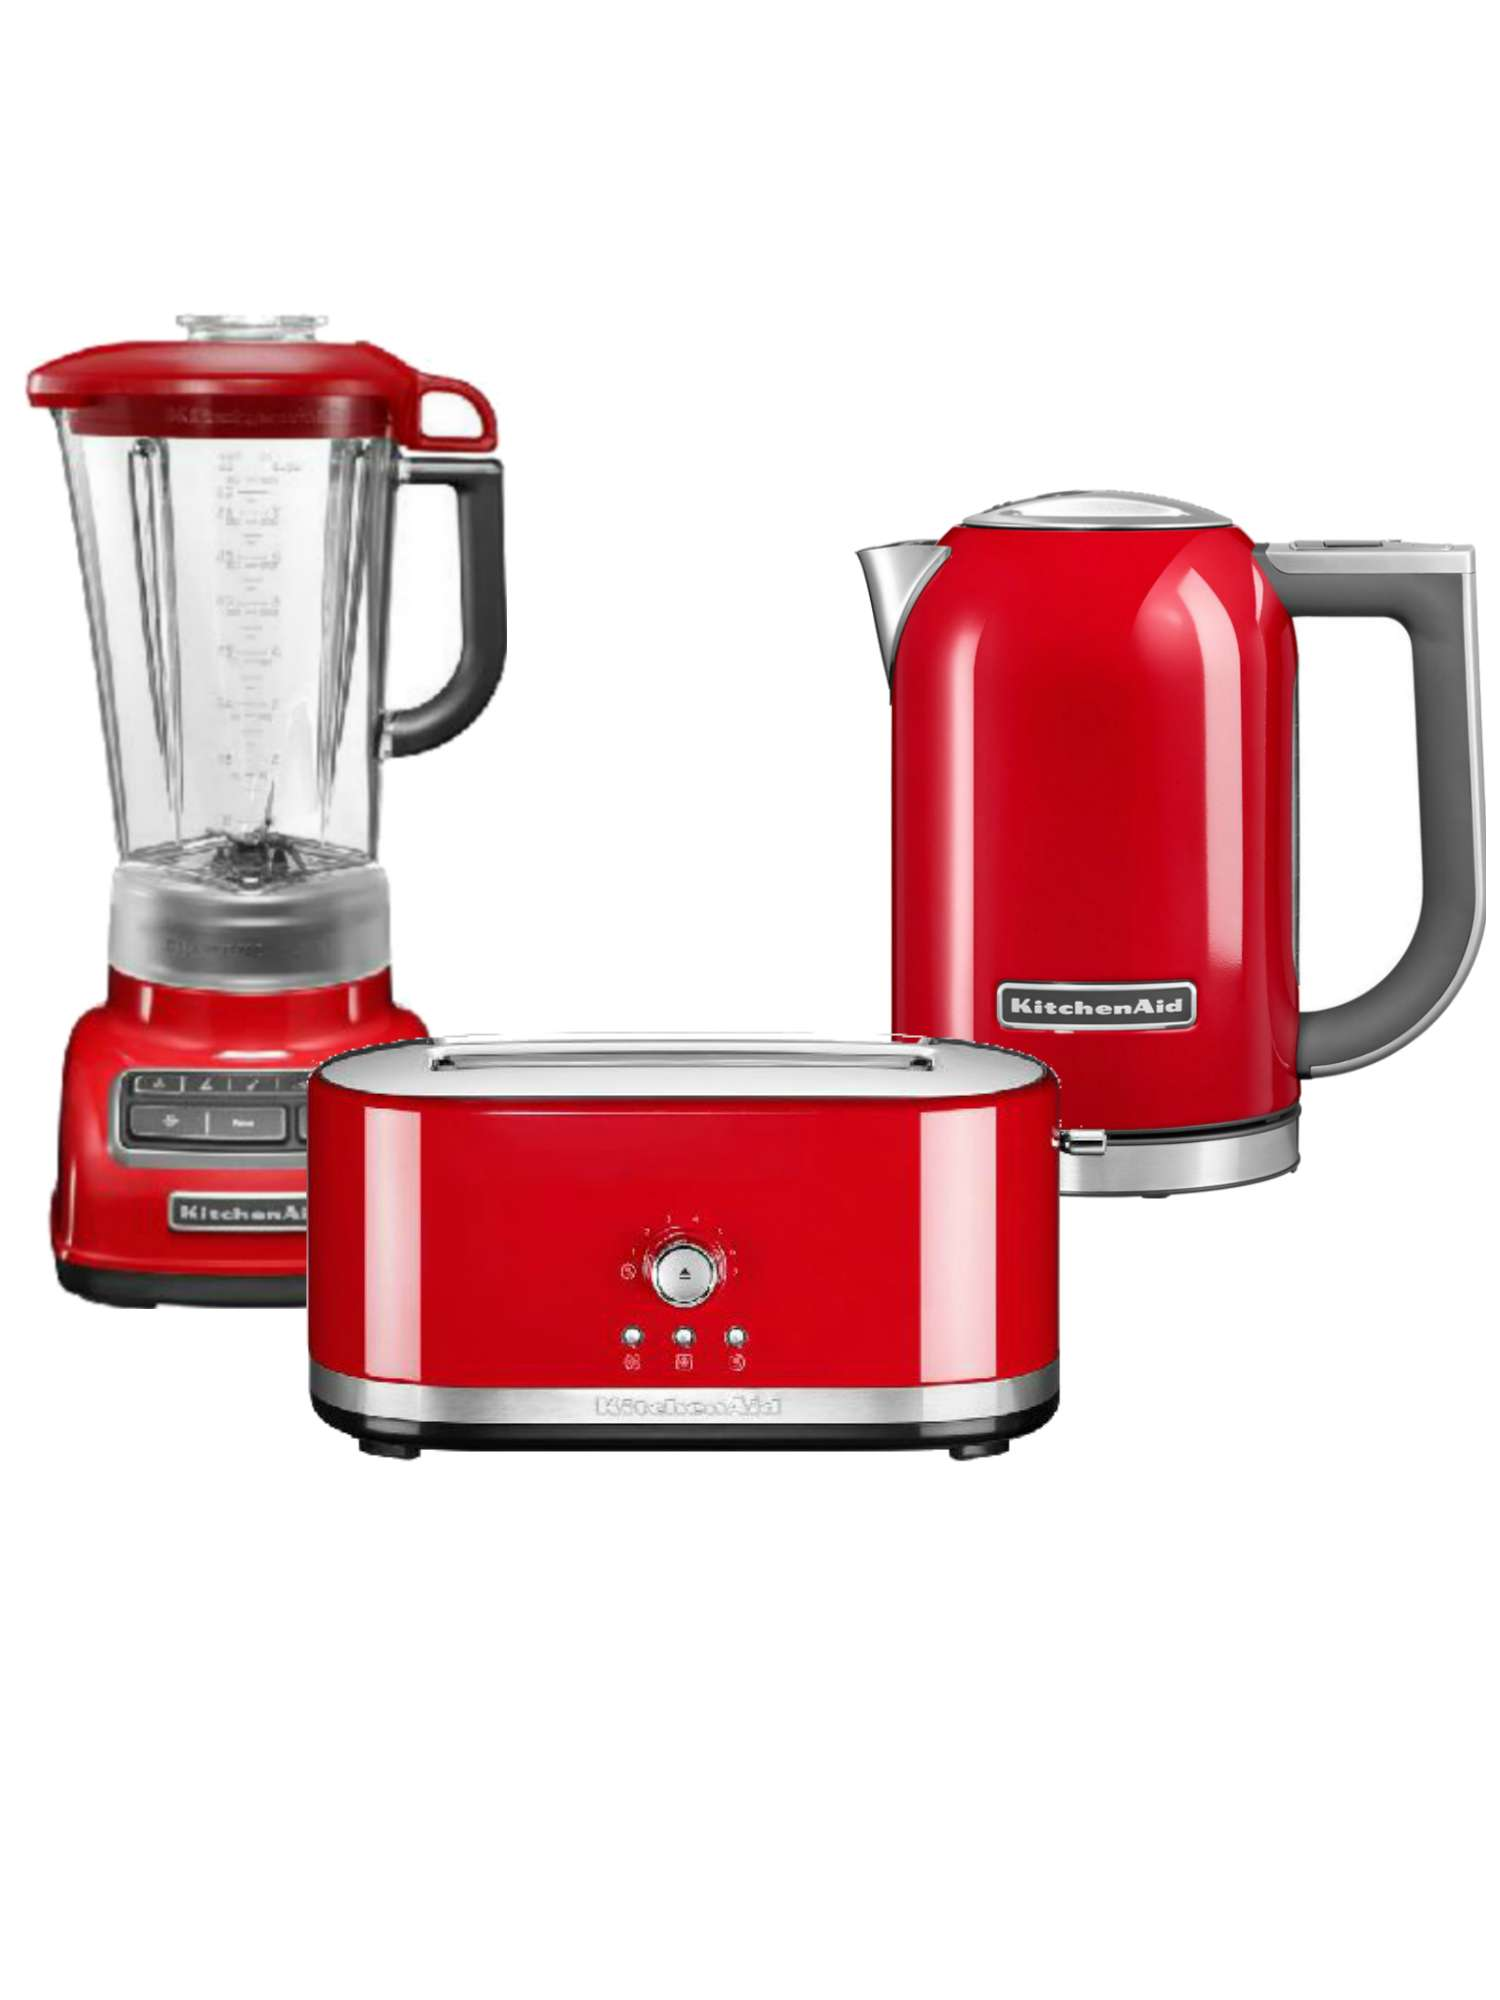 KitchenAid | KitchenAid Classic Online - House of Fraser